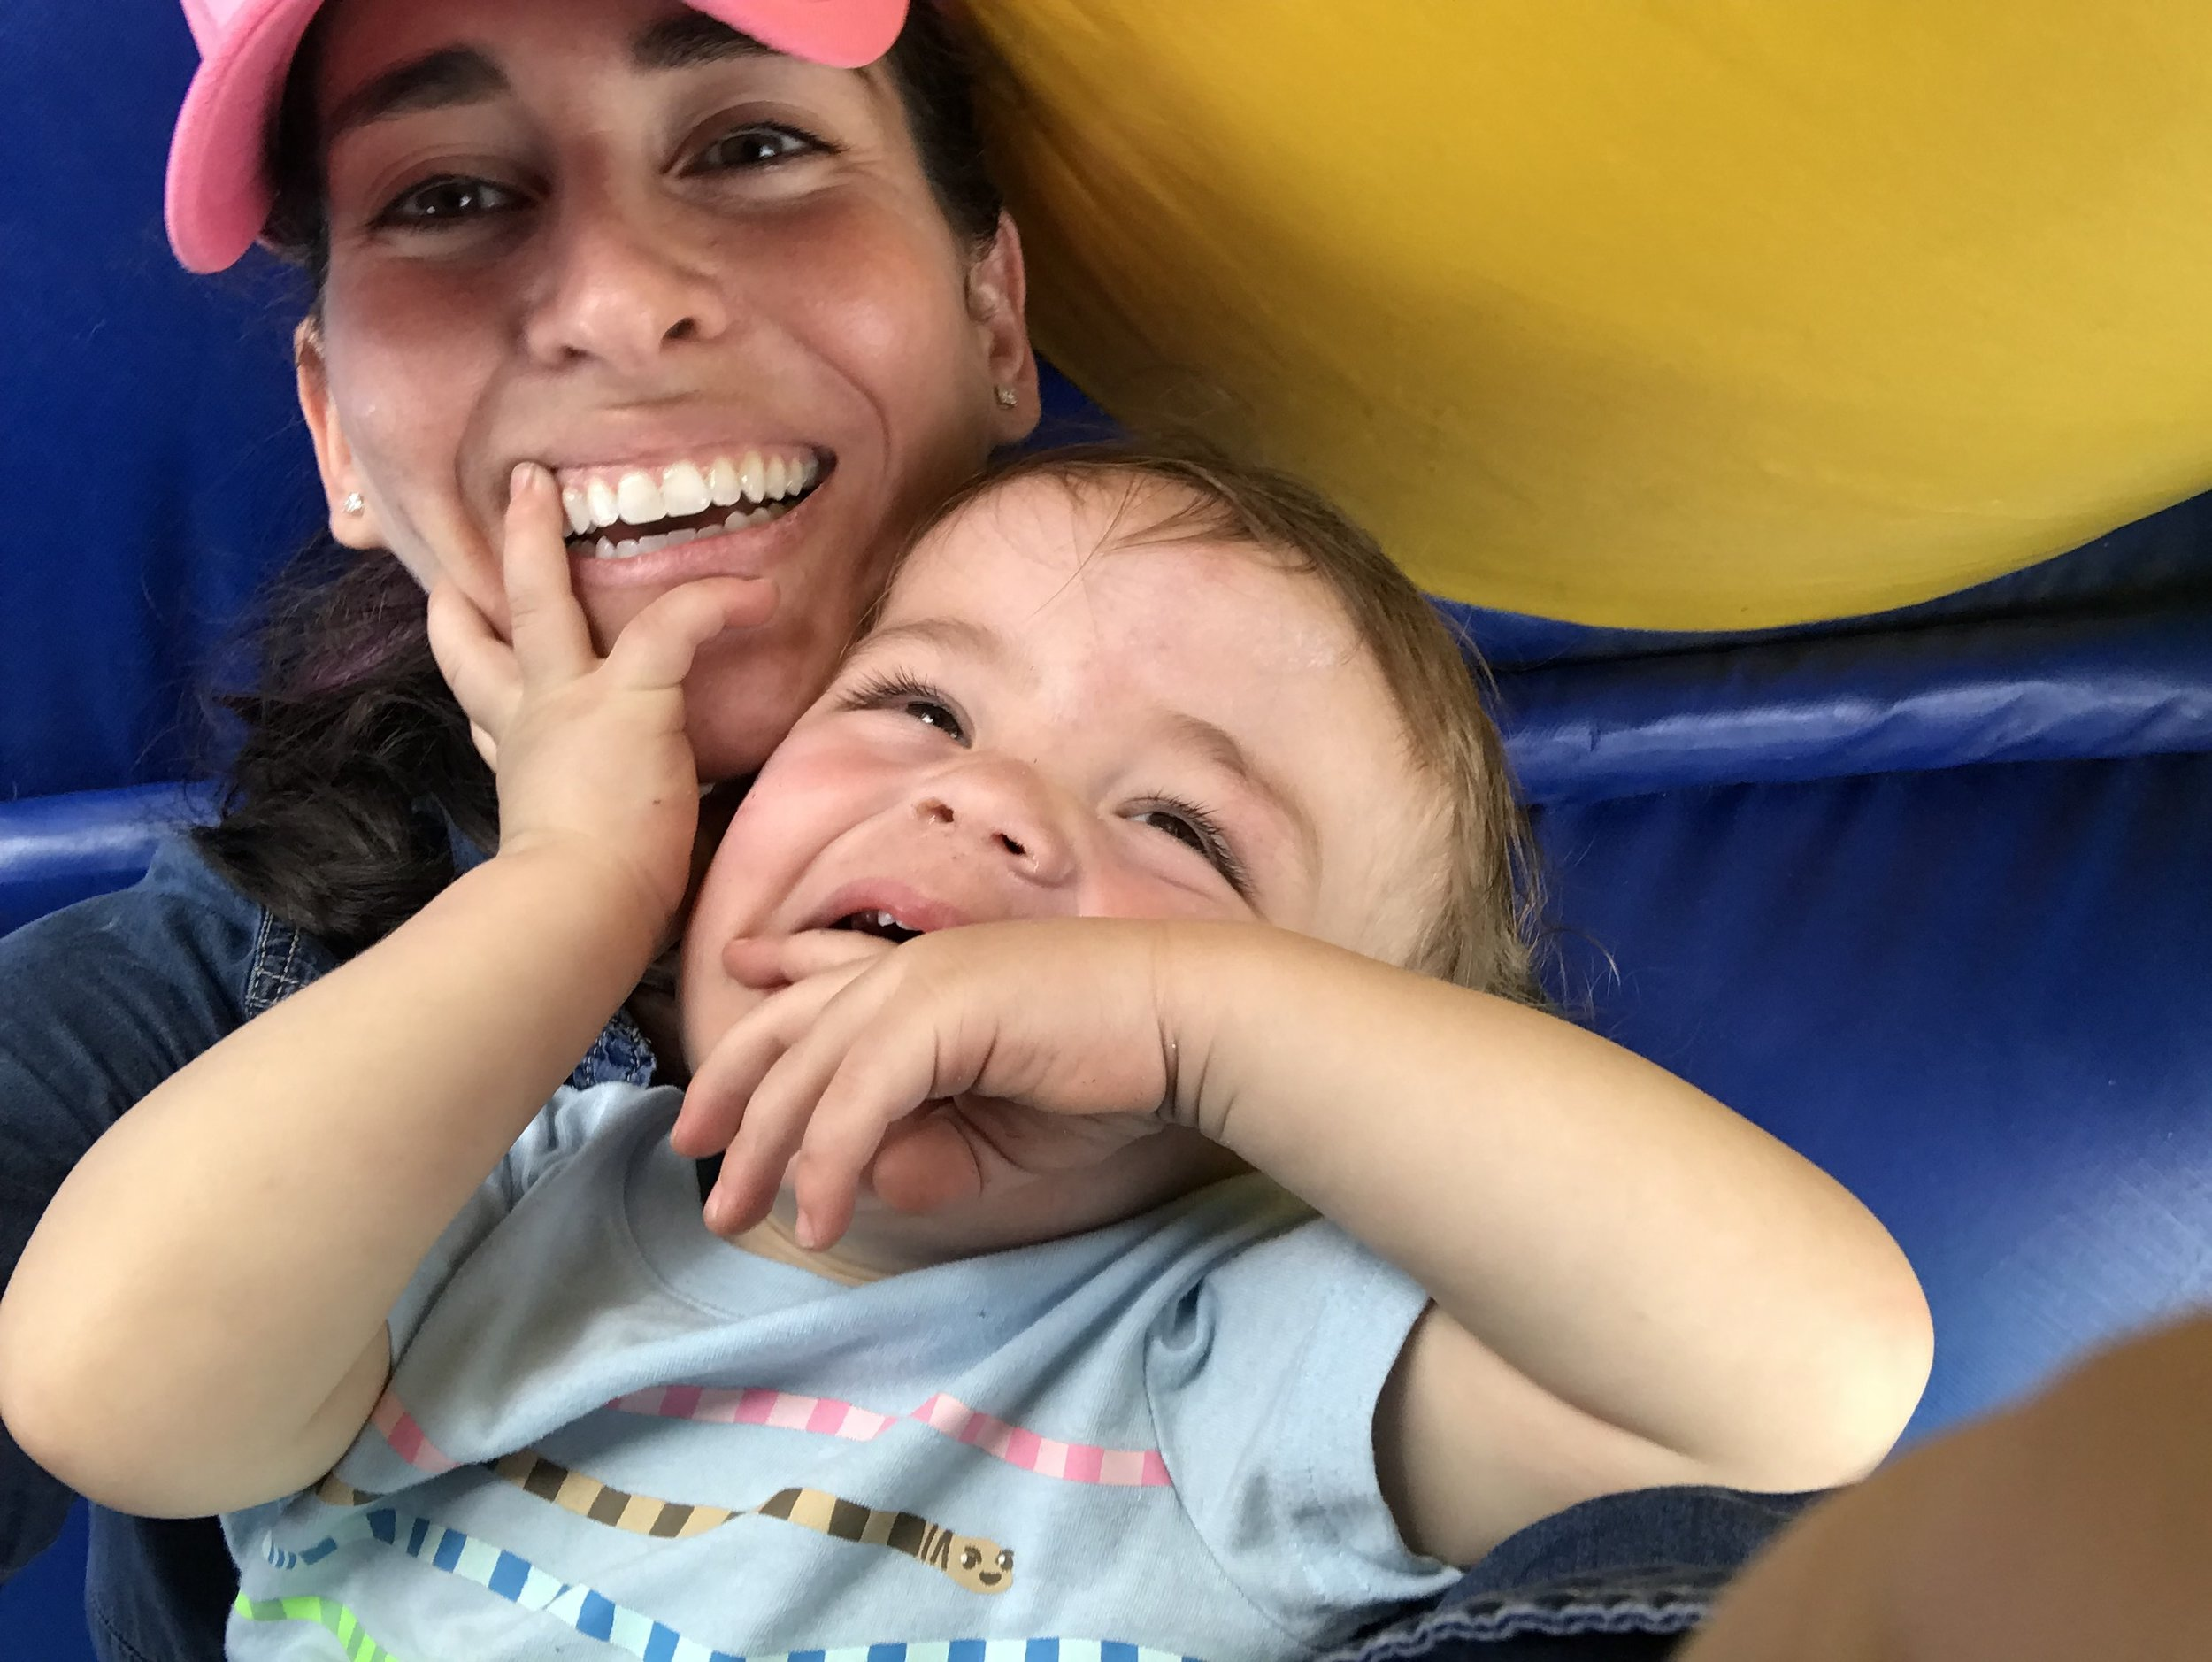 Proud mom of a sweet, curious and rambunctious 2 year old boy who happily keeps me on my toes.His current obsessions: Animals + Moana. He makes me melt when he looks into my eyes and says 'Mami, te amo' (Mommy, I love you) - puddle. -